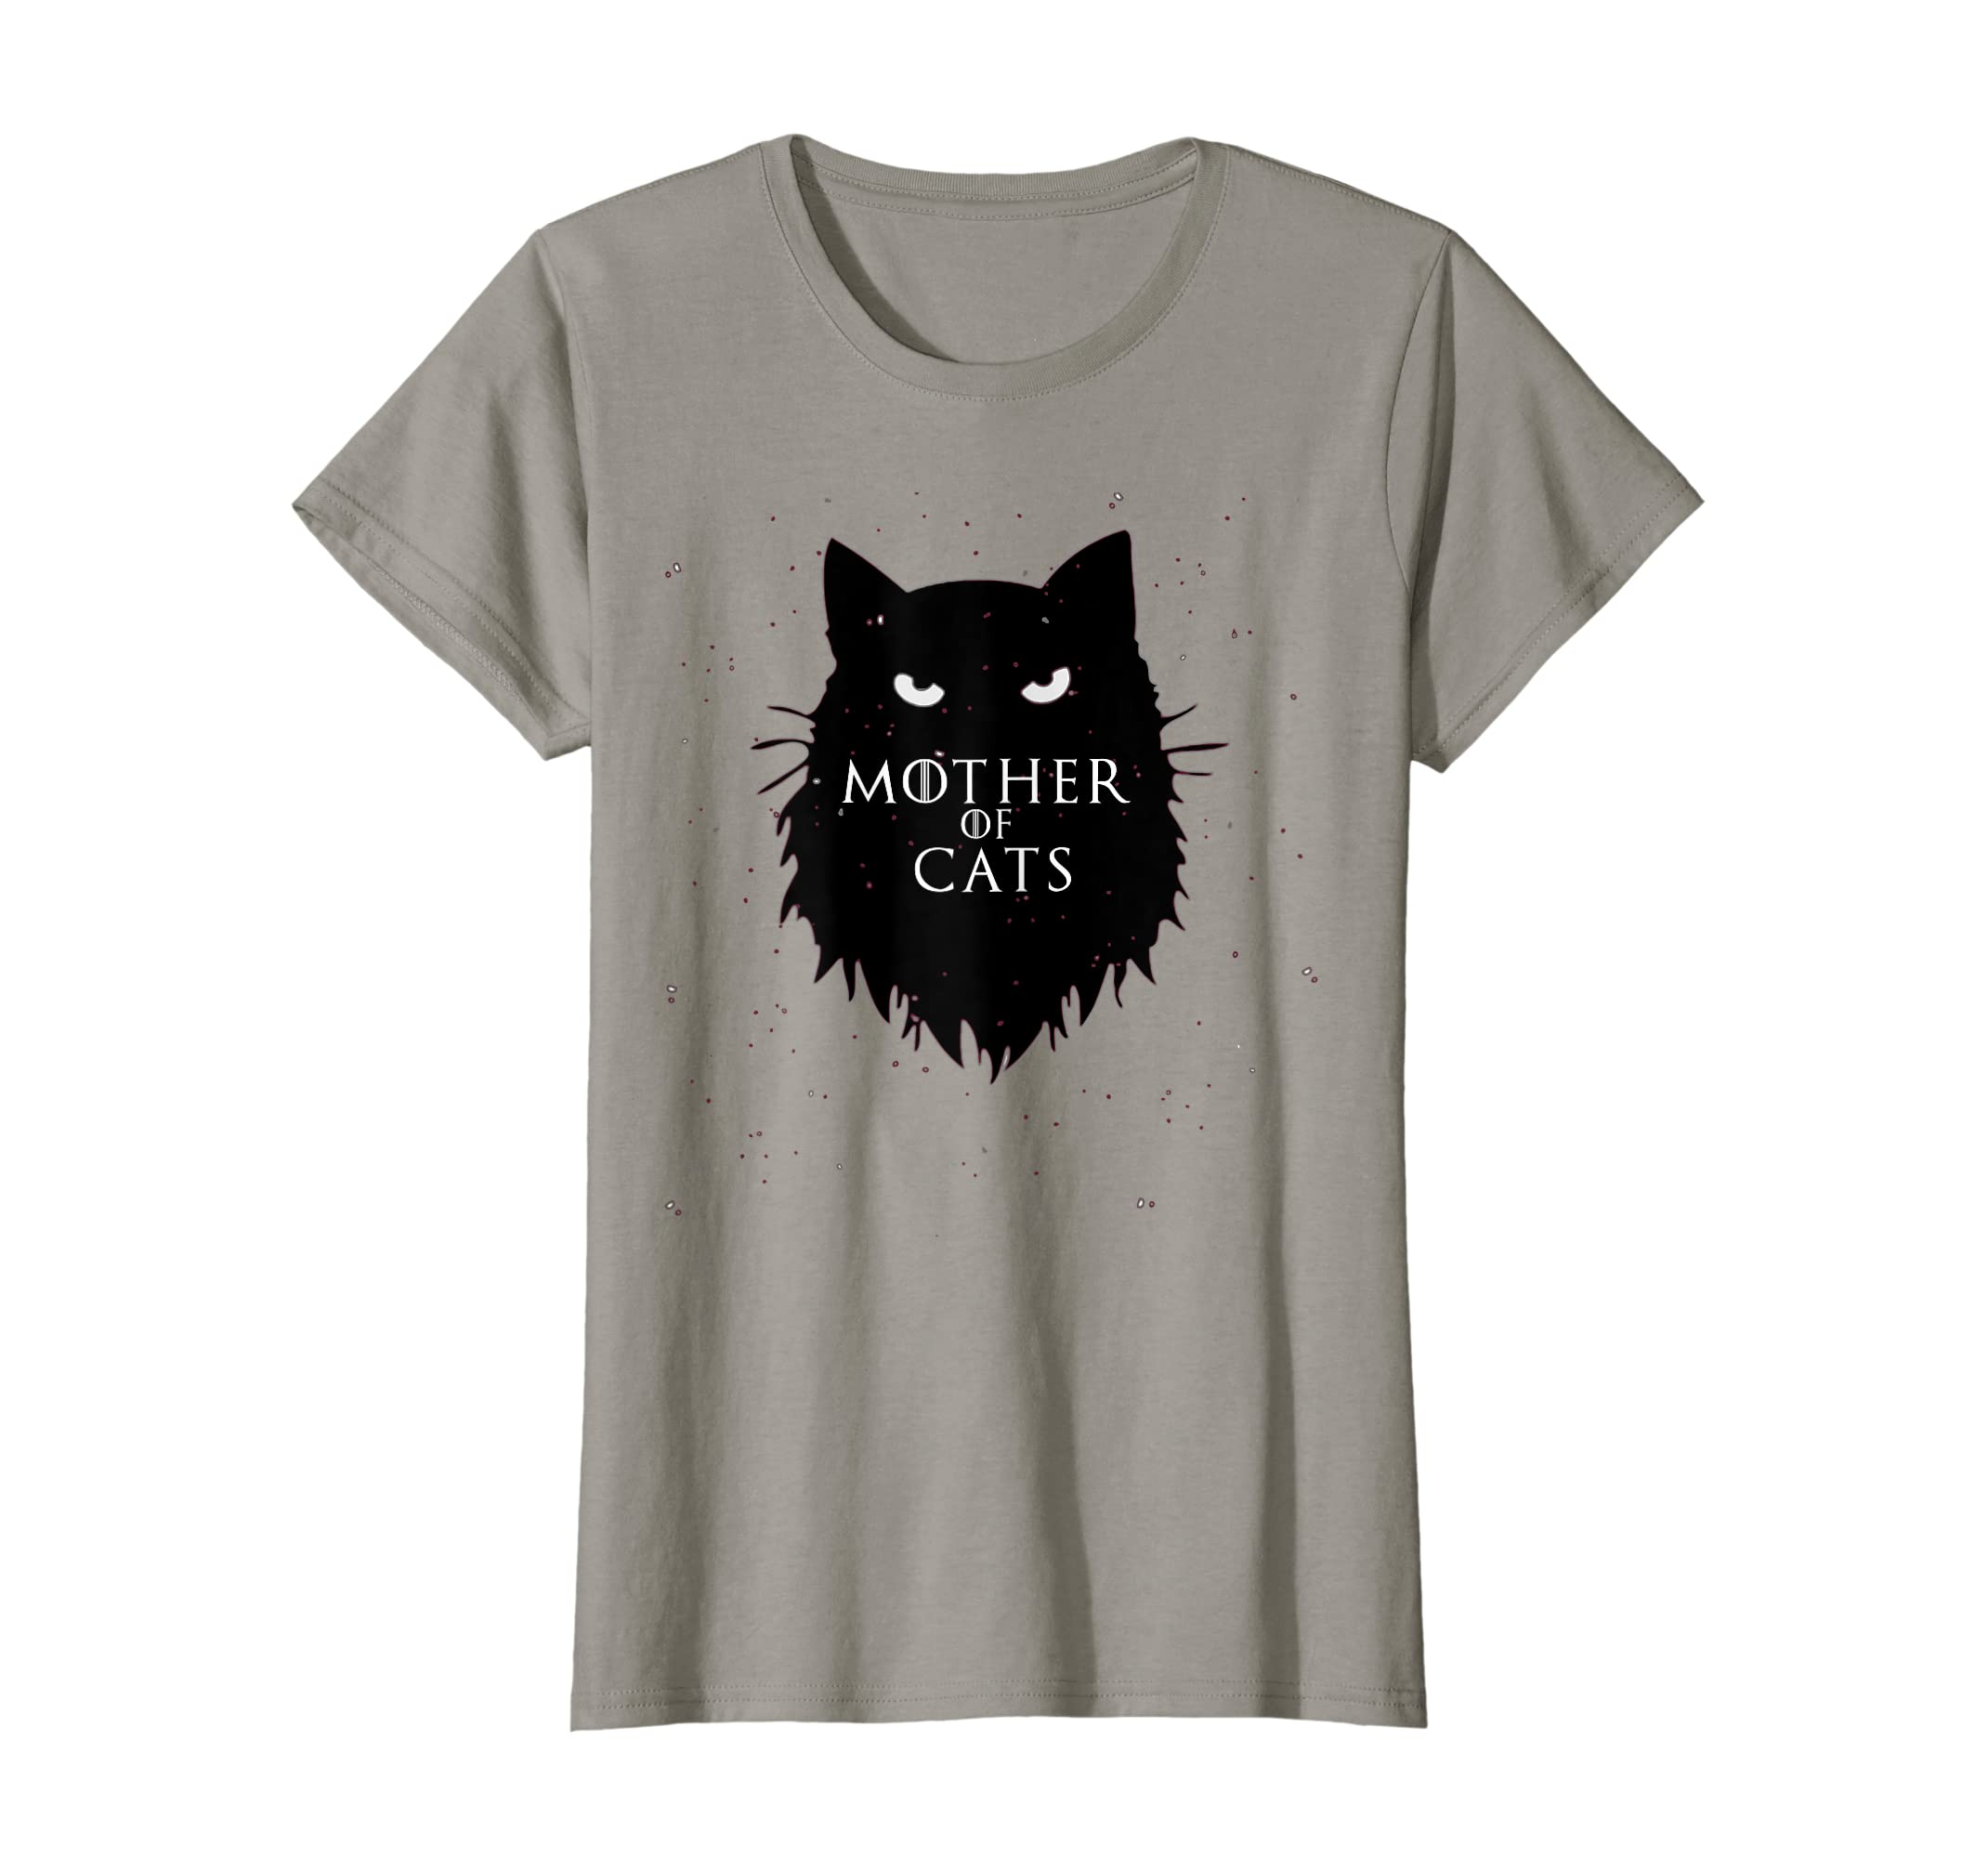 Mother Of Cats T-Shirt Funny King Or Queen Cosplay Gift-Yolotee